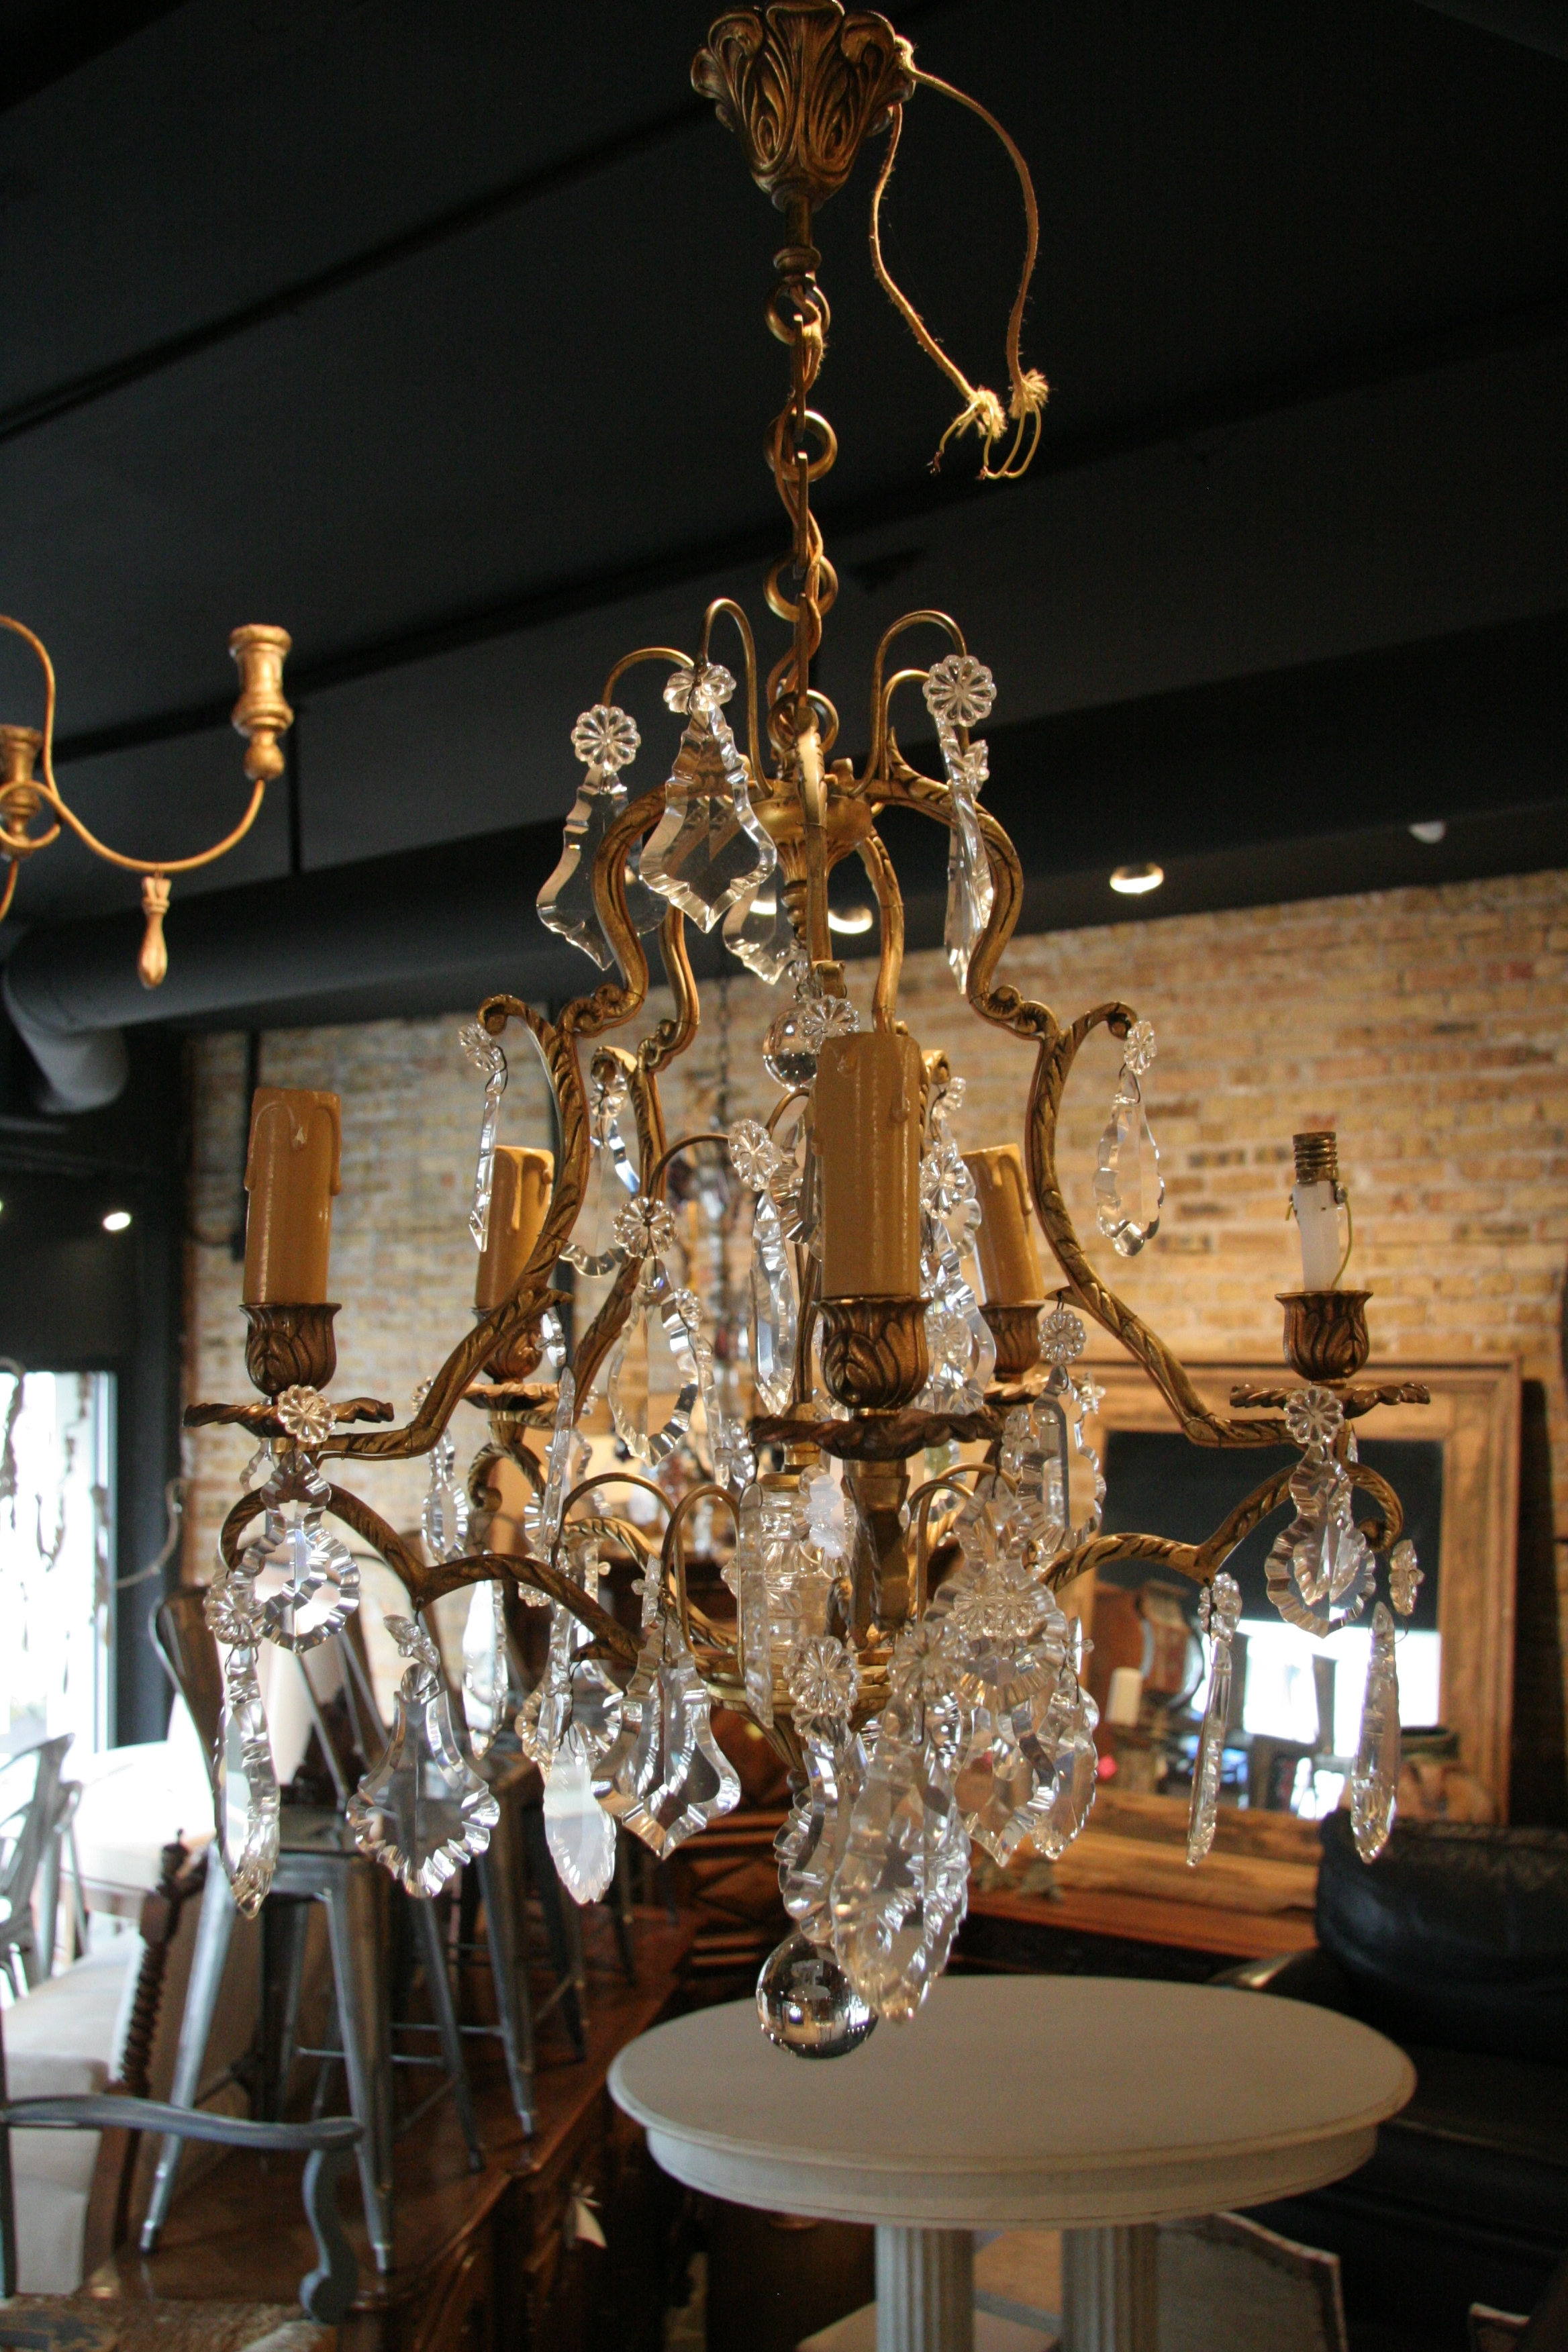 Antique French 5 Light Brass And Crystal Chandelier – Sold – With Regard To Recent French Crystal Chandeliers (View 14 of 15)